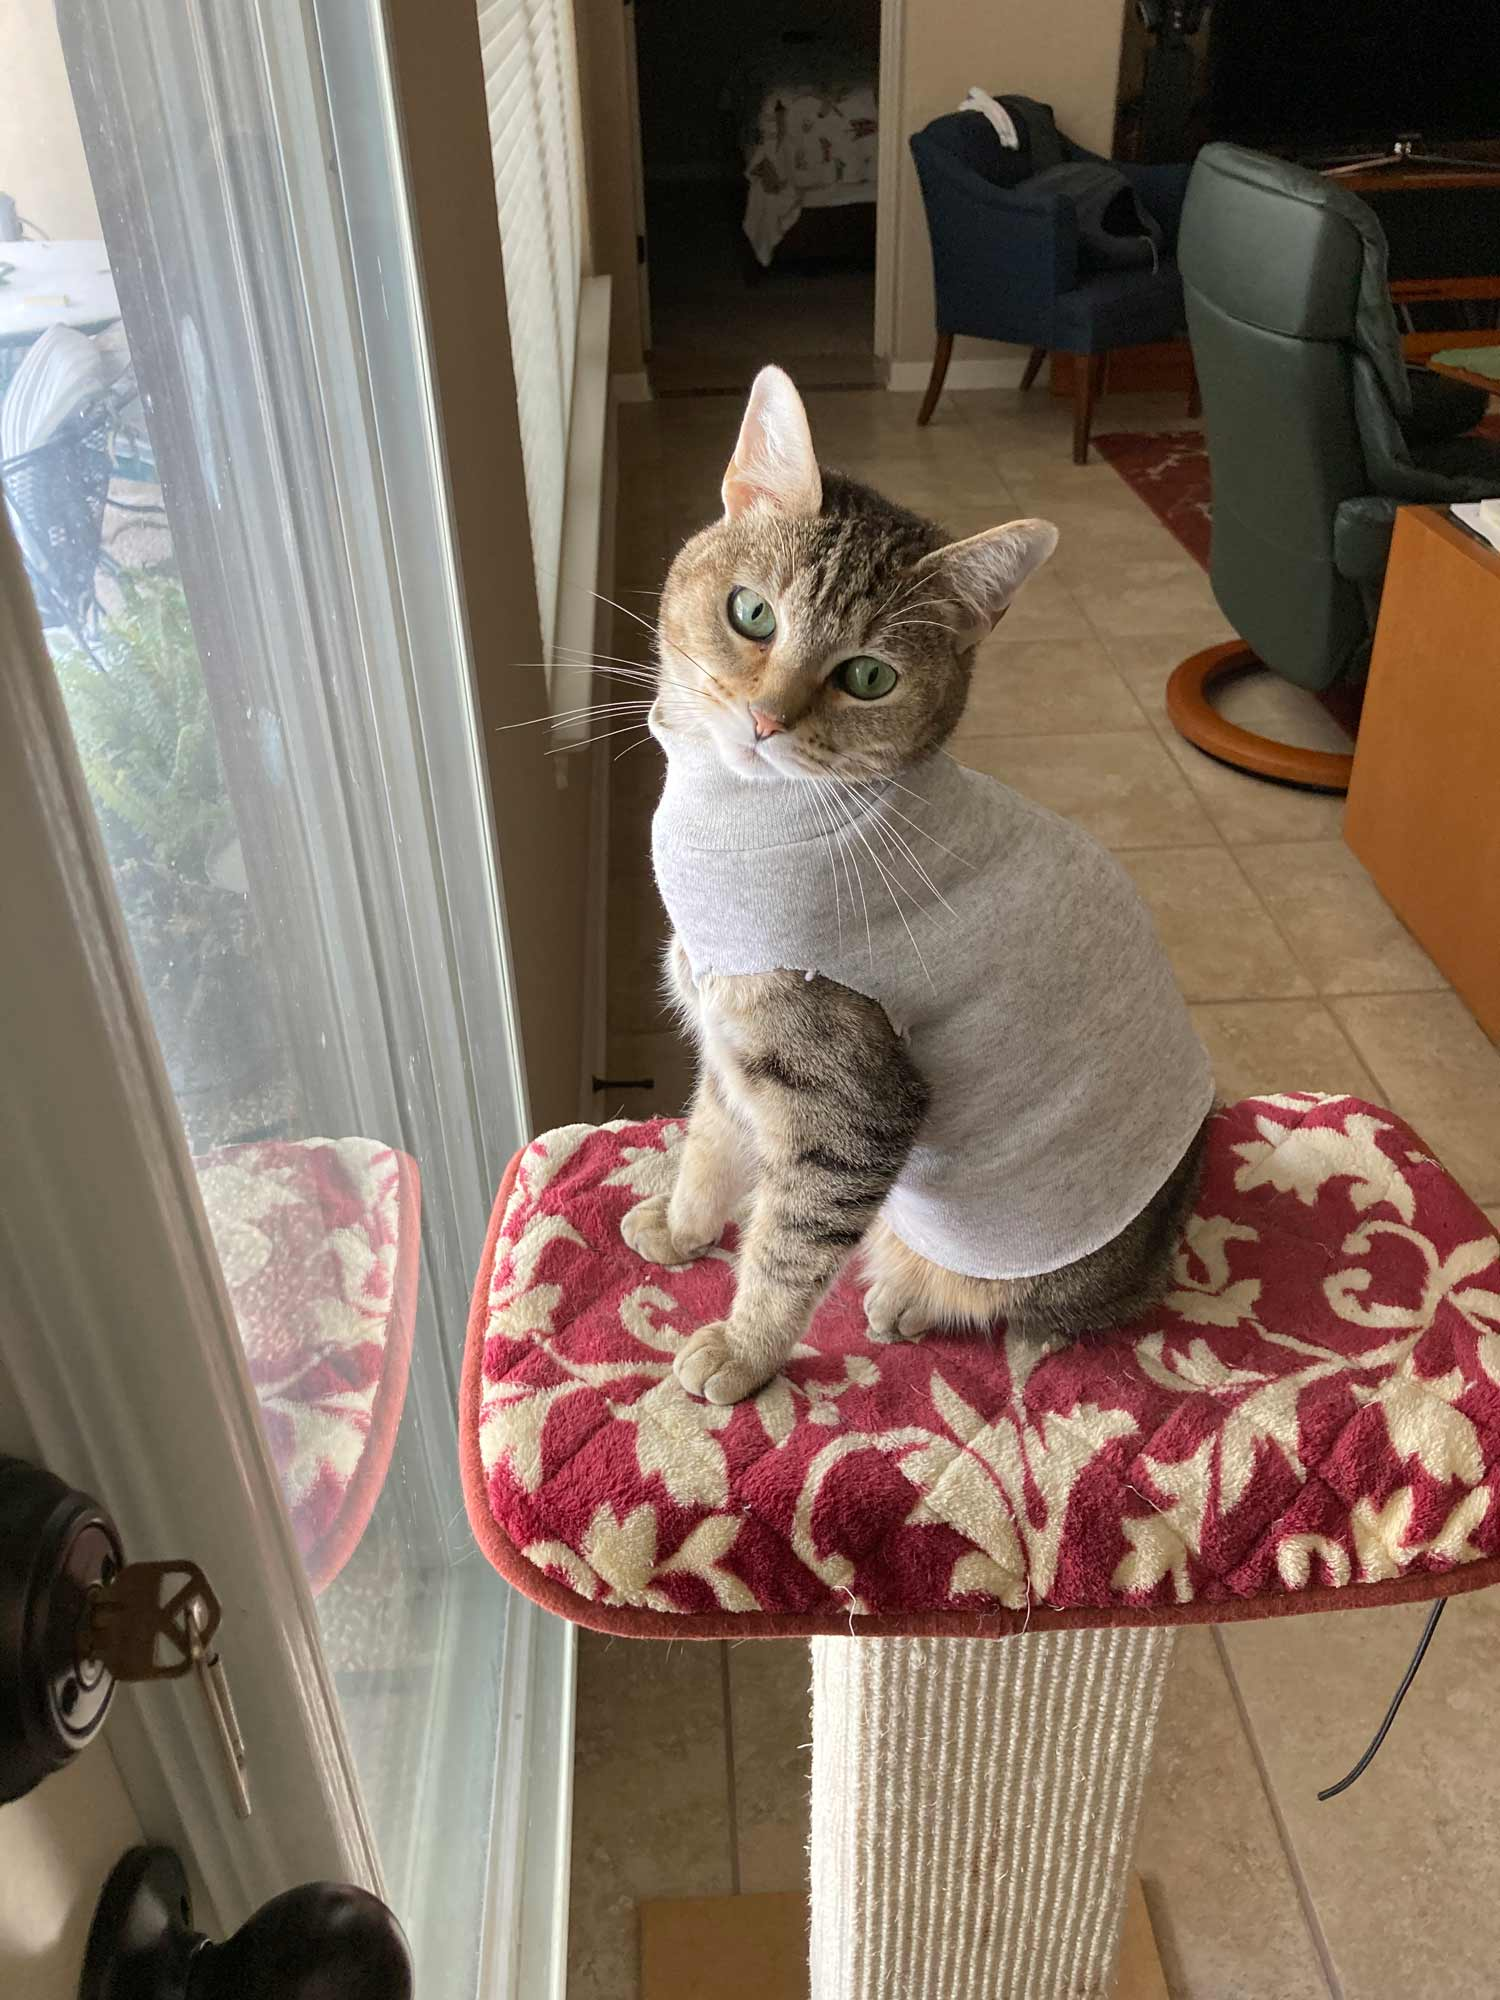 Meet Abby the Tabby, perched and ready for bird watching in her cute sweater. A cat in clothes!